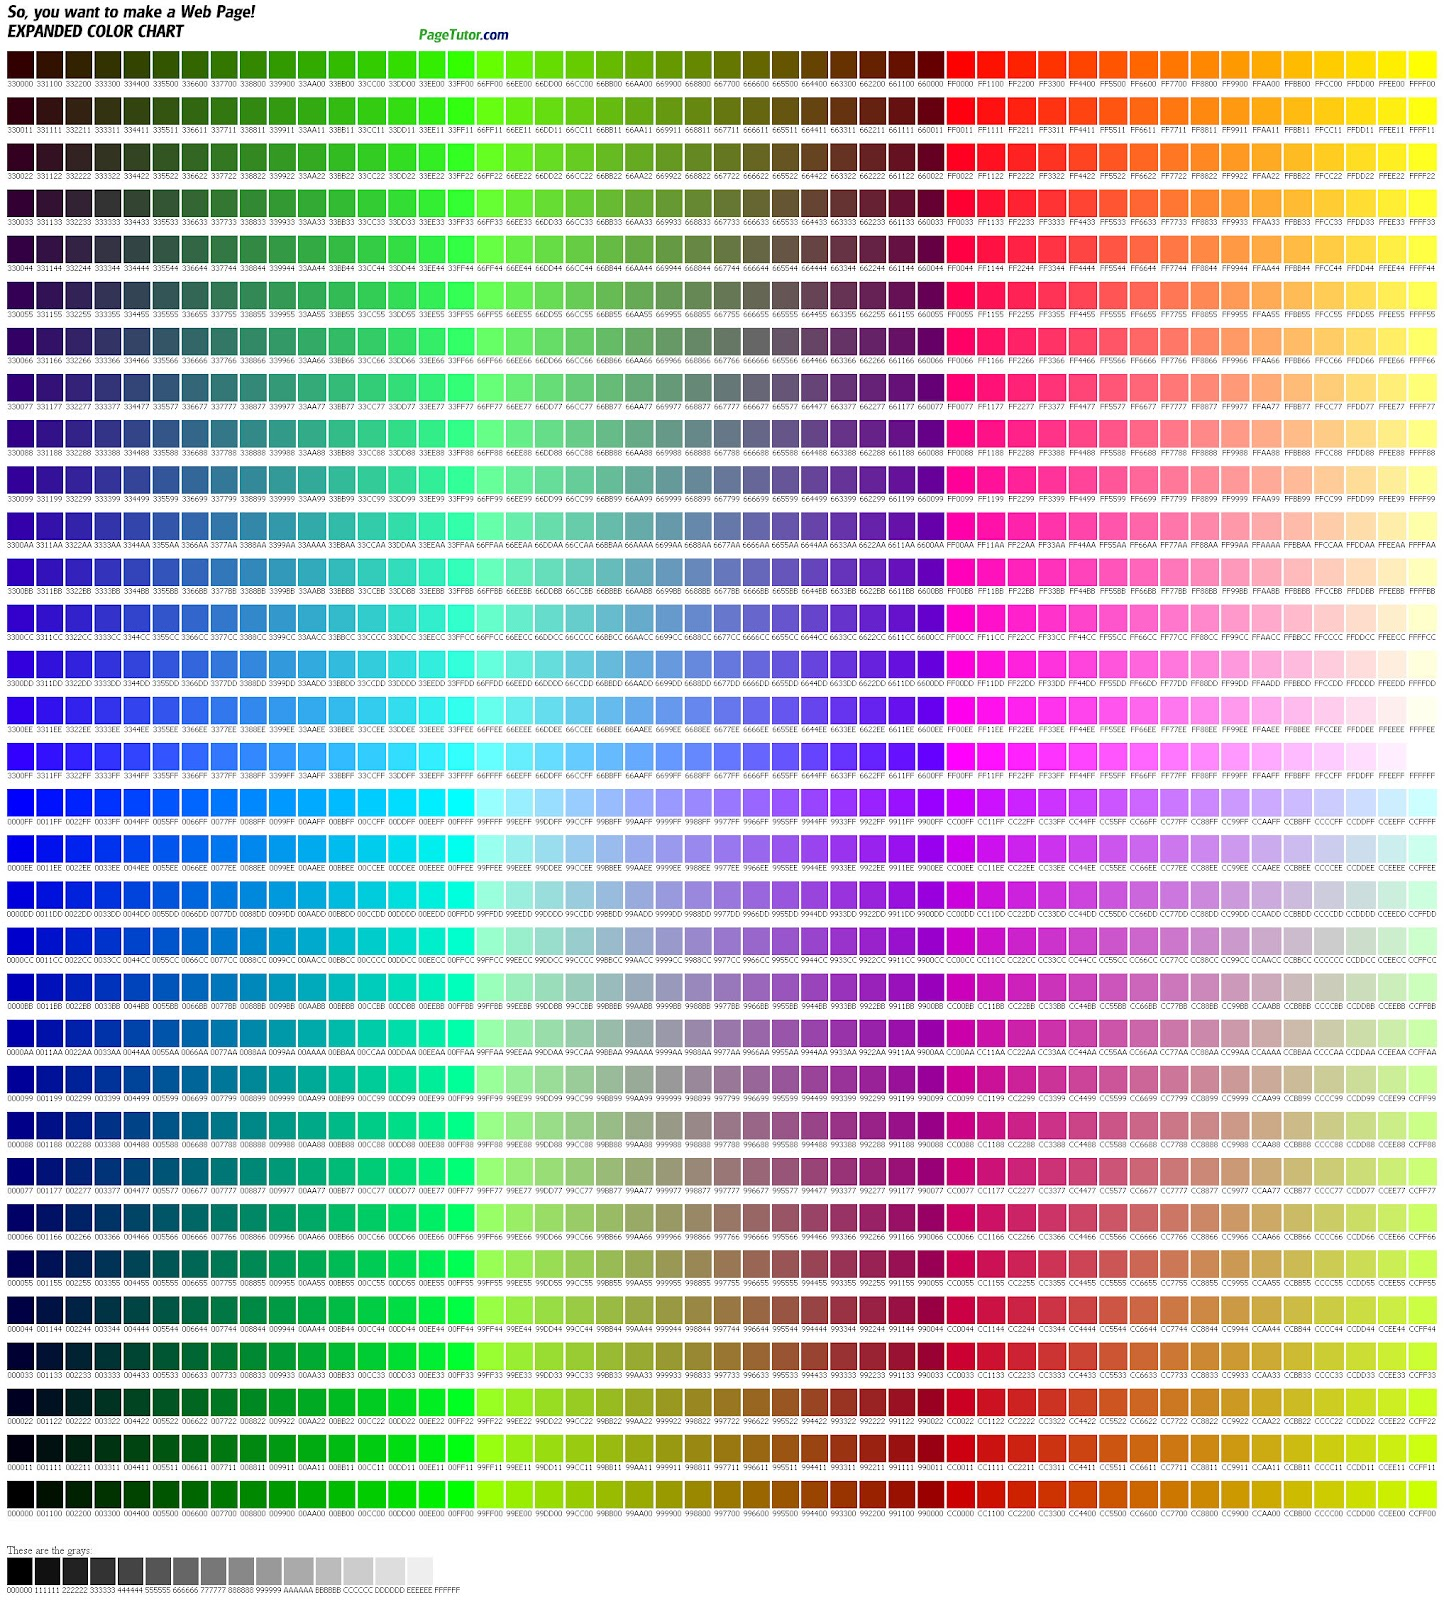 Color Hexadecimal 28 Images Colors Www